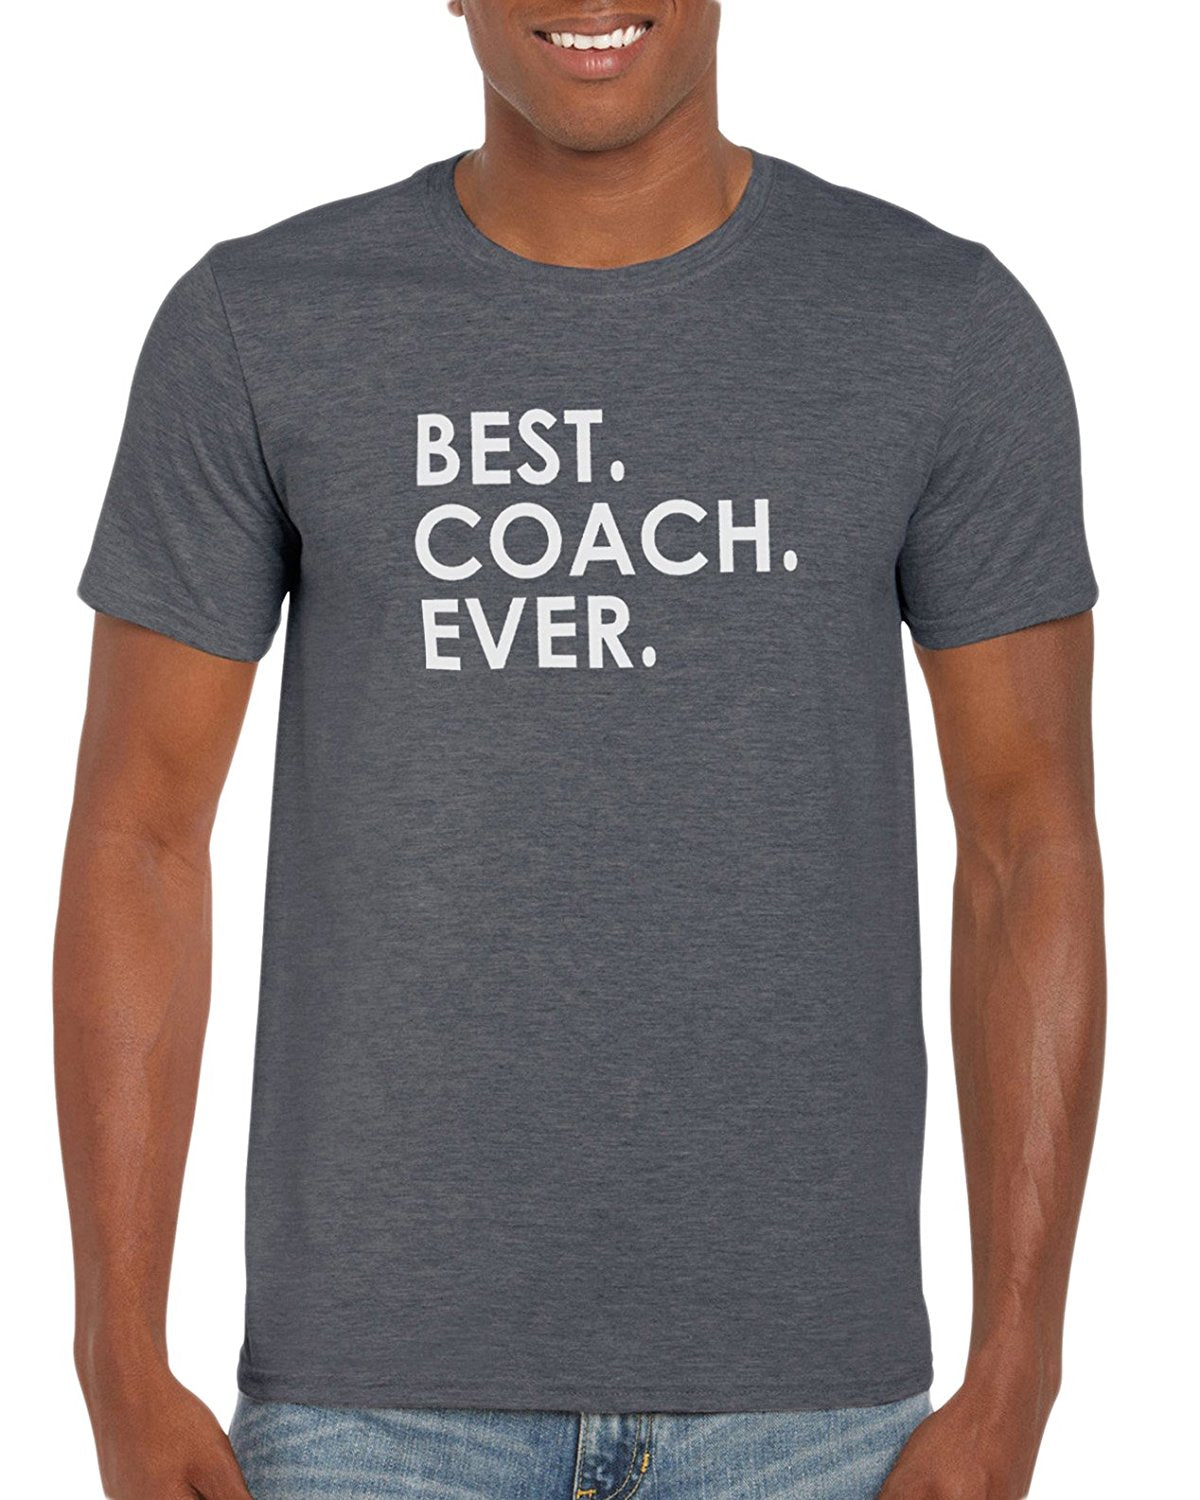 c643adc9f The Red Garnet Best Coach Ever T-Shirt Sports Dad Soccer Baseball Football  or Team